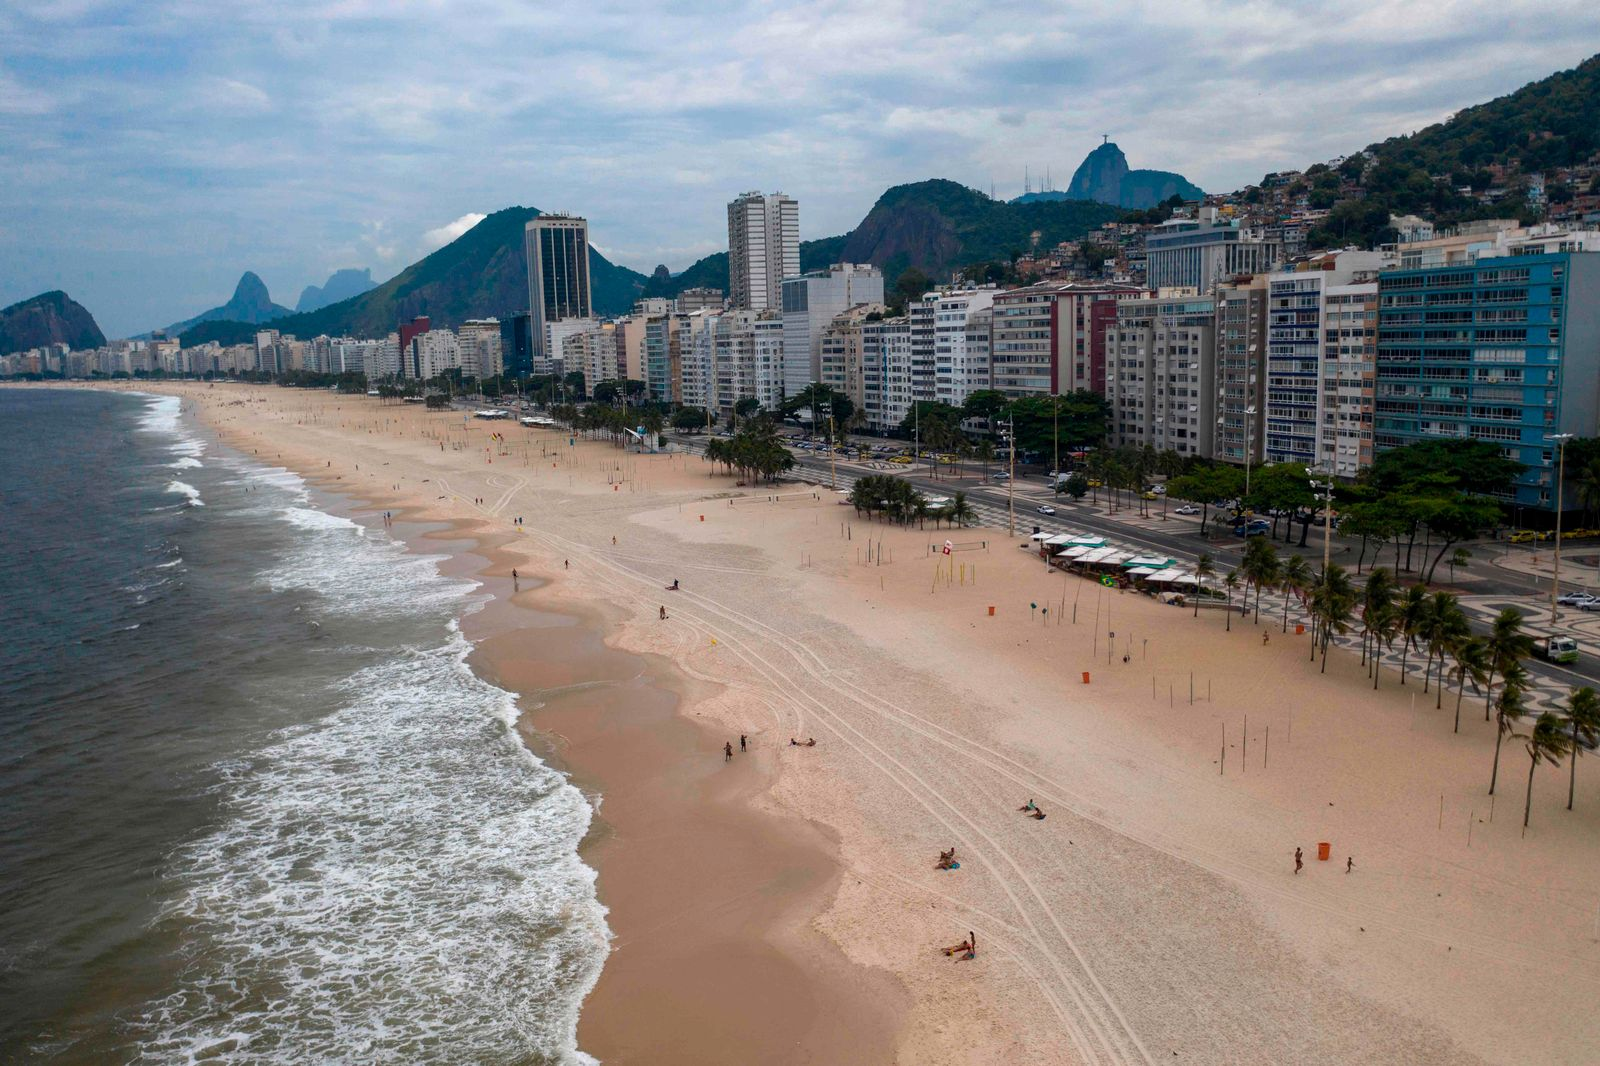 FILES-BRAZIL-HEALTH-VIRUS-BEACH-APP-RESERVATION